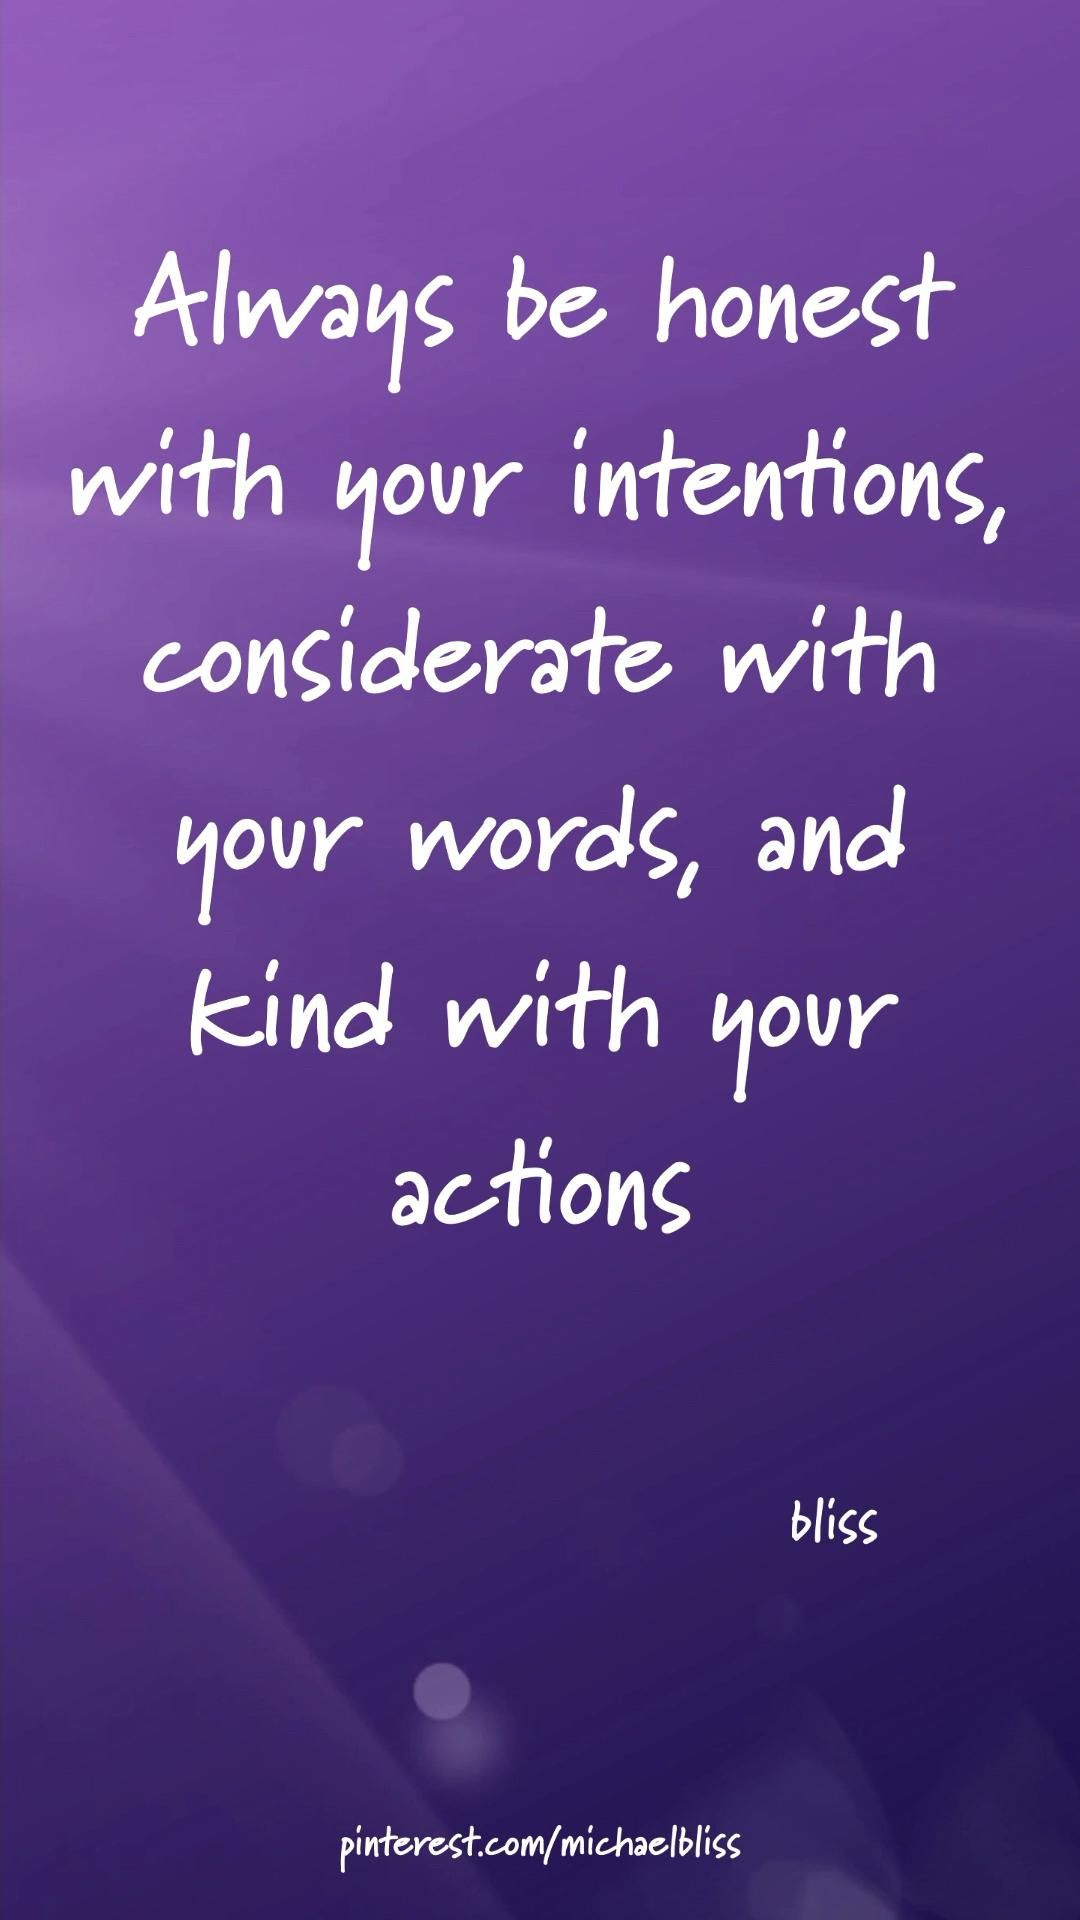 Honest with your intentions, kind with your actions